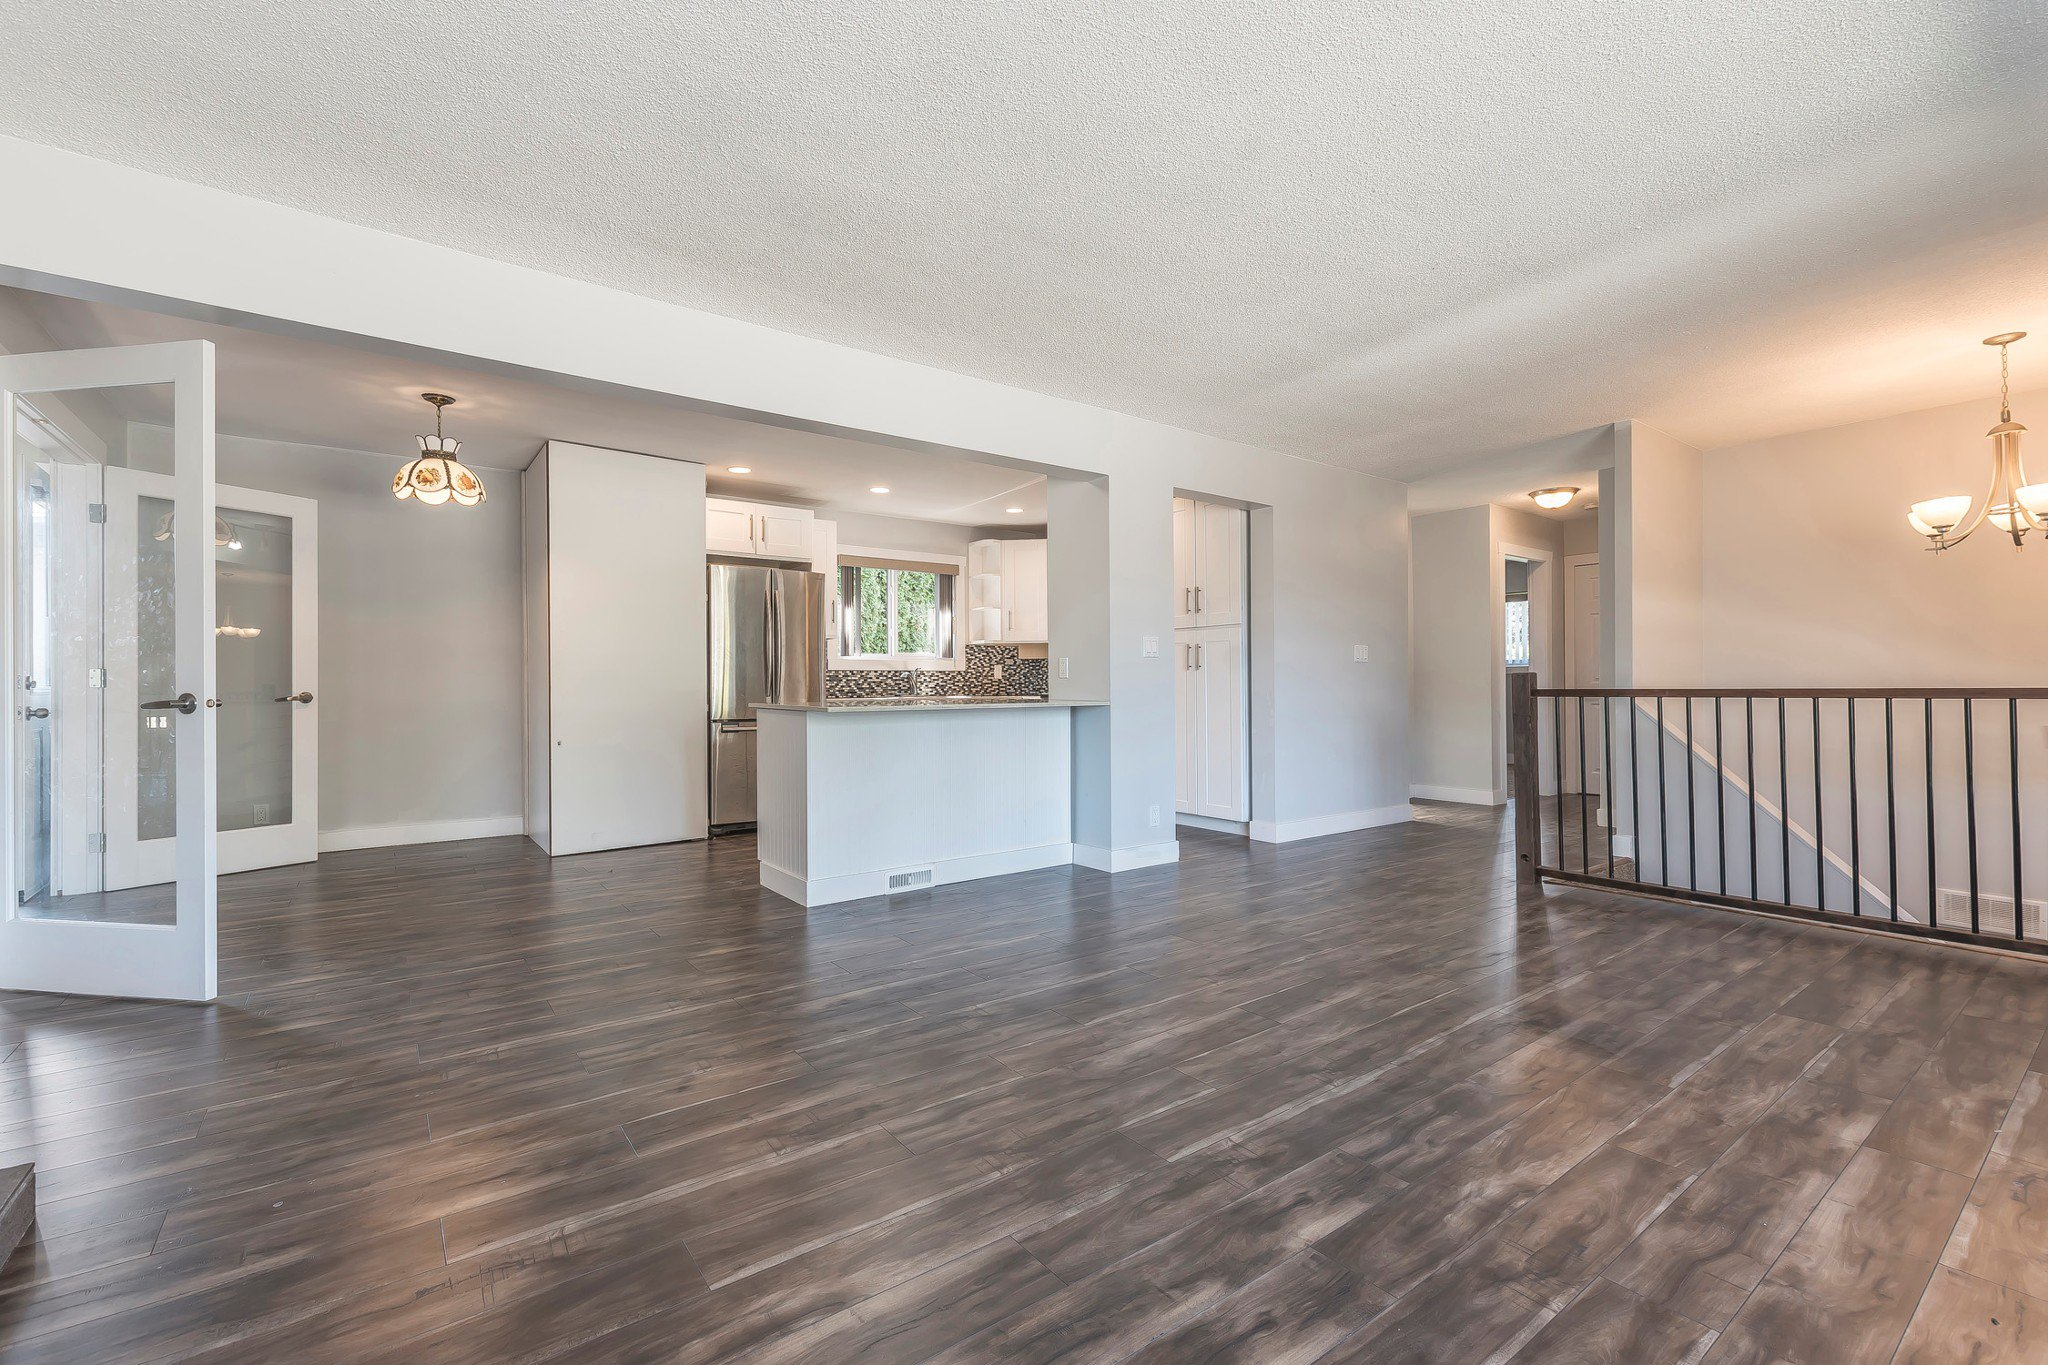 Photo 4: Photos: 46240 Reece: Chilliwack House for sale : MLS®# R2211935